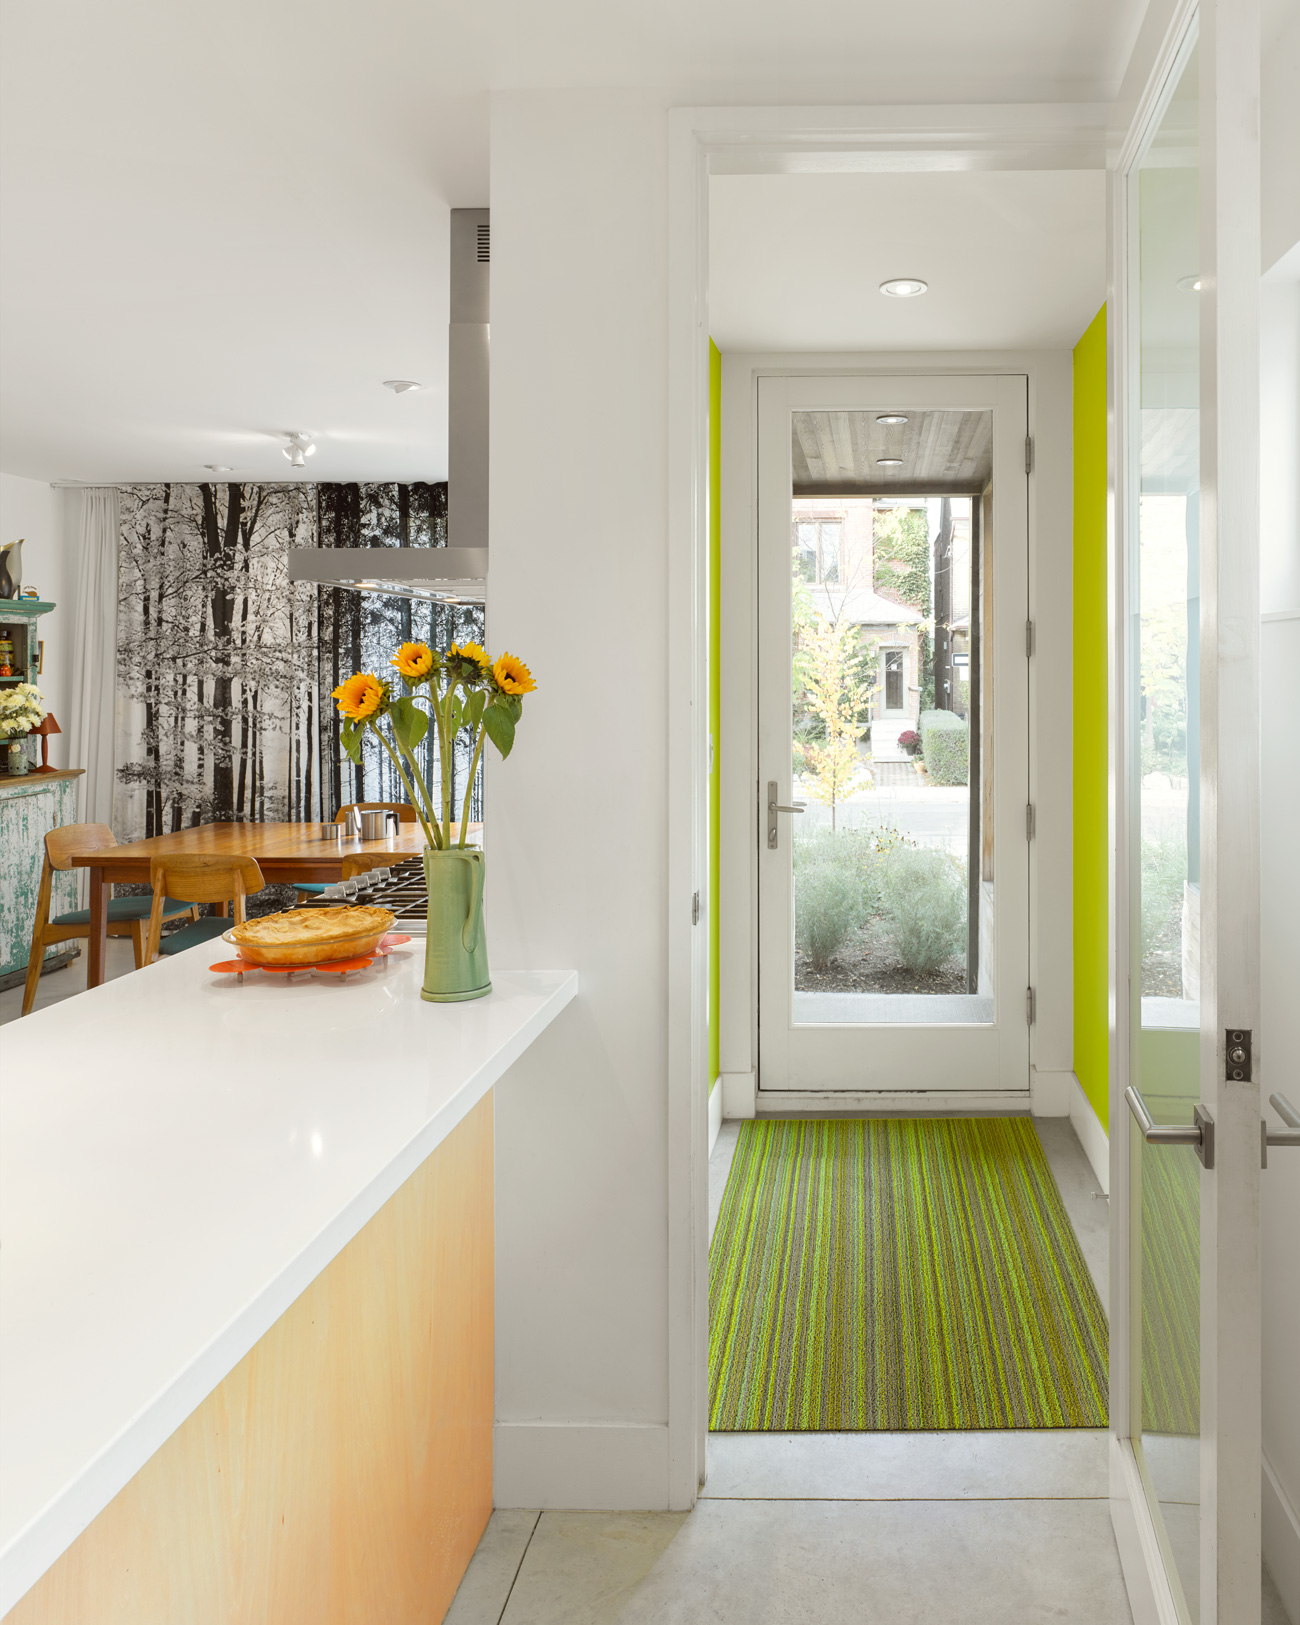 A Chilewich rug in the foyer leads to a vibrant kitchen.